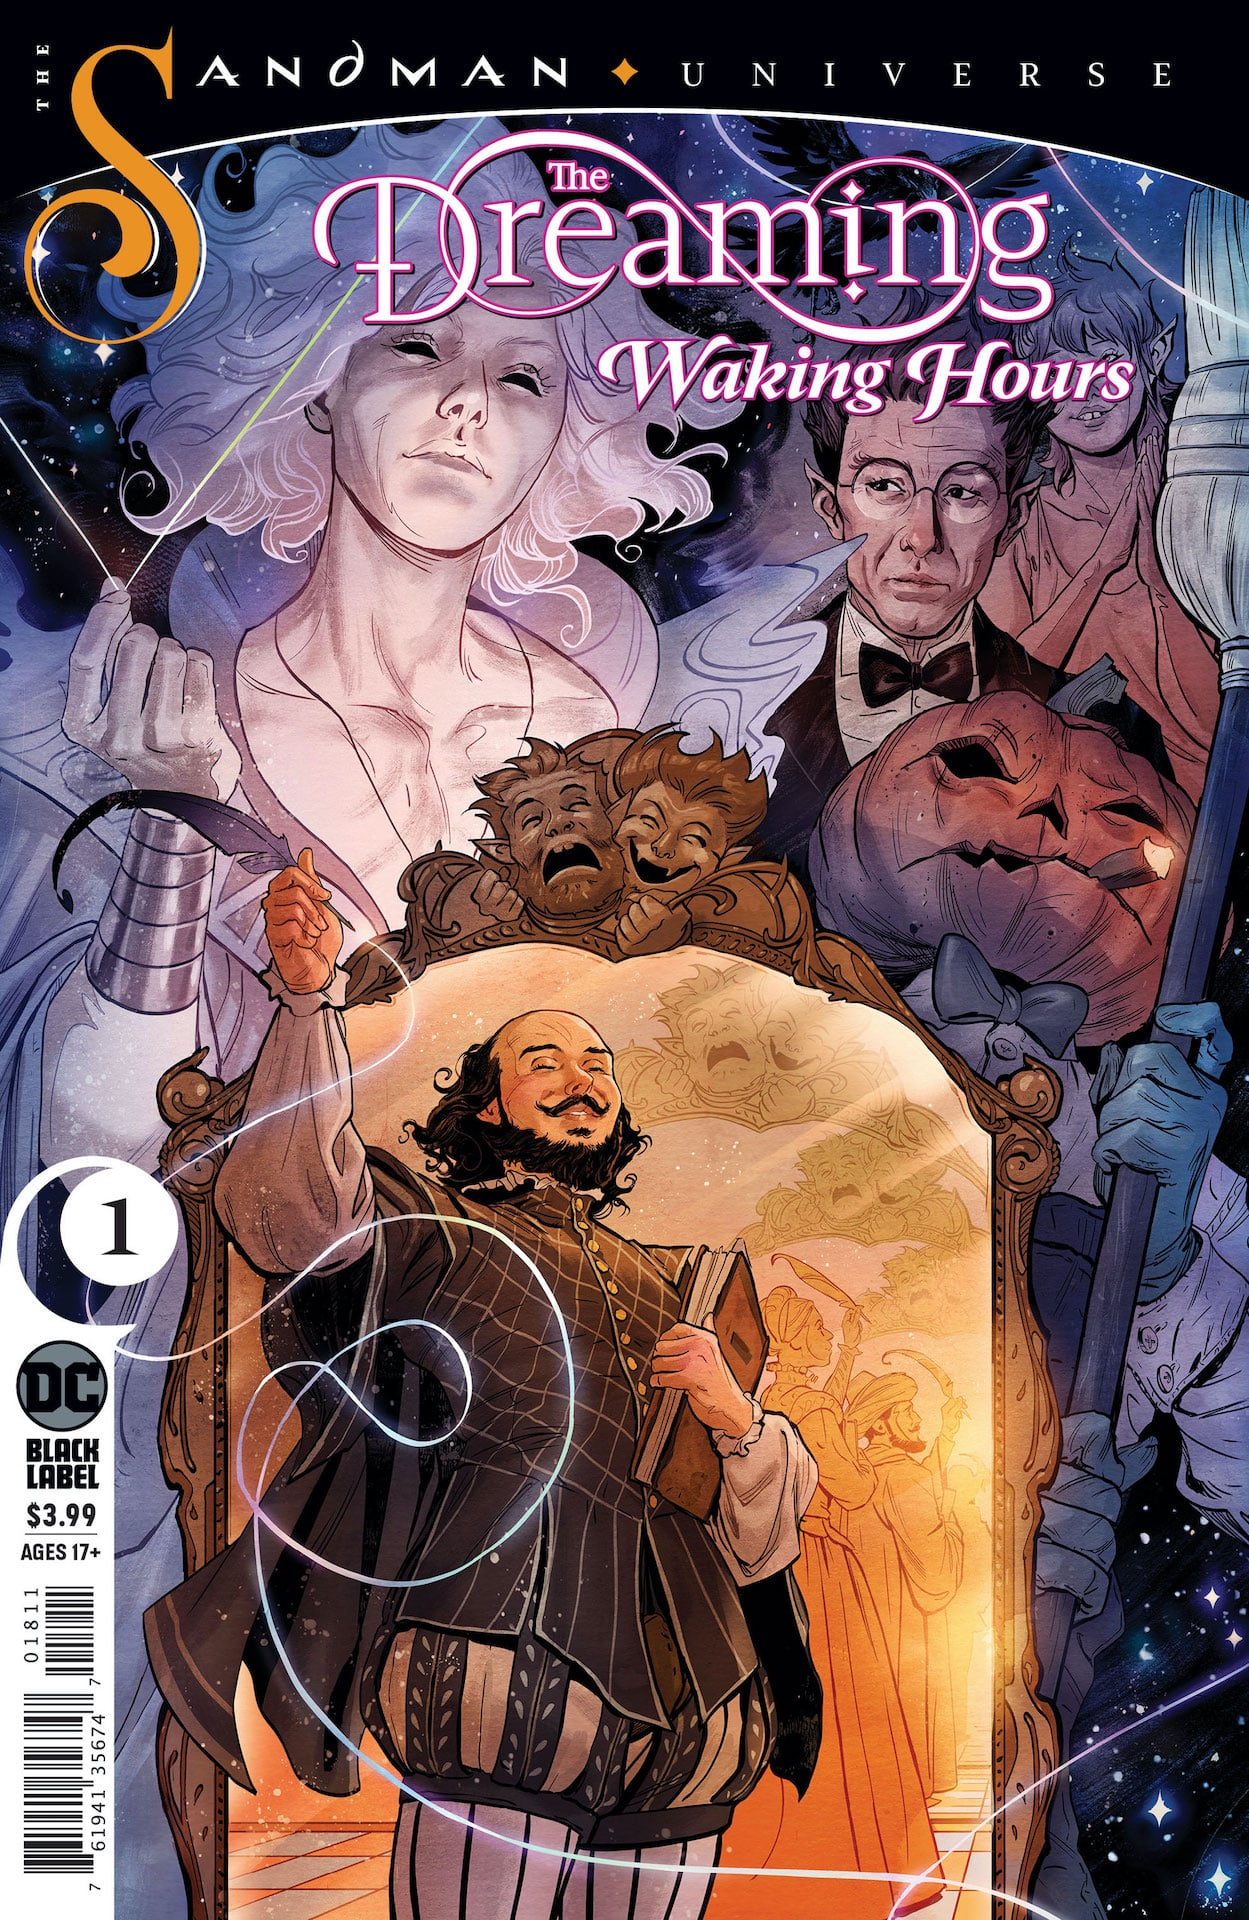 'The Dreaming: Waking Hours' #1 review: An elegant mix of sophisticated storytelling